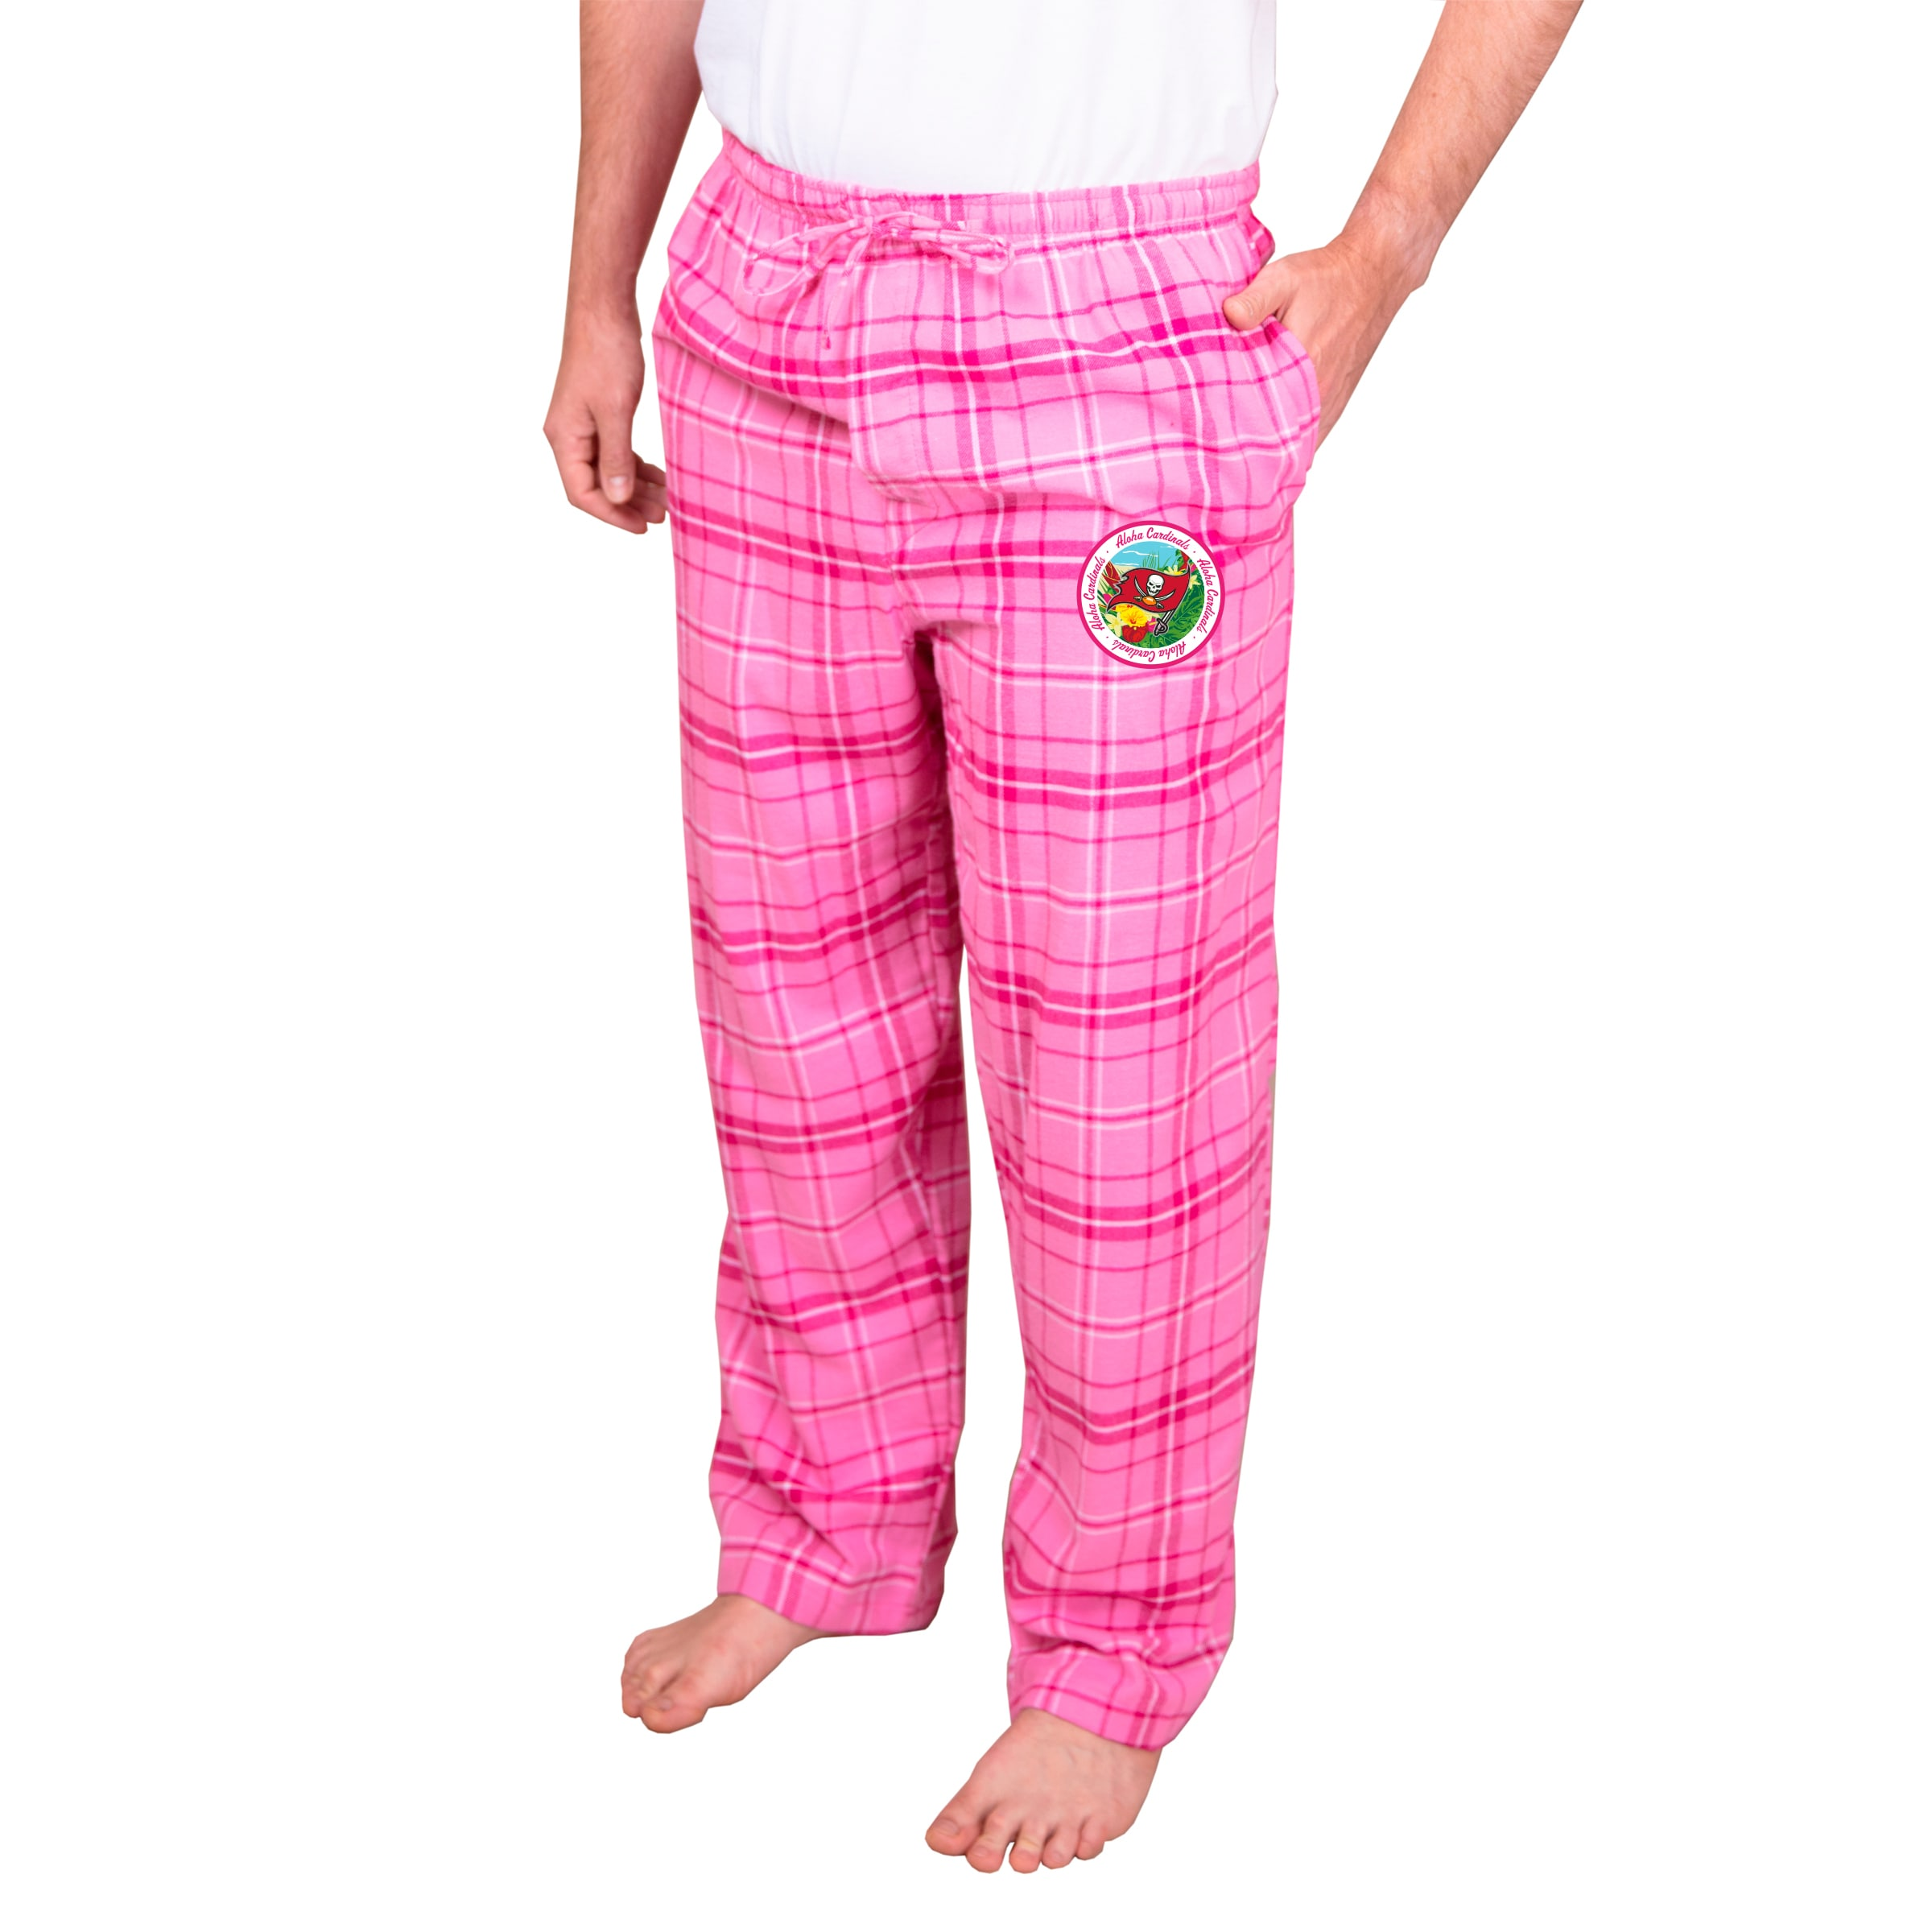 Tampa Bay Buccaneers Concepts Sport Ultimate Pants - Pink